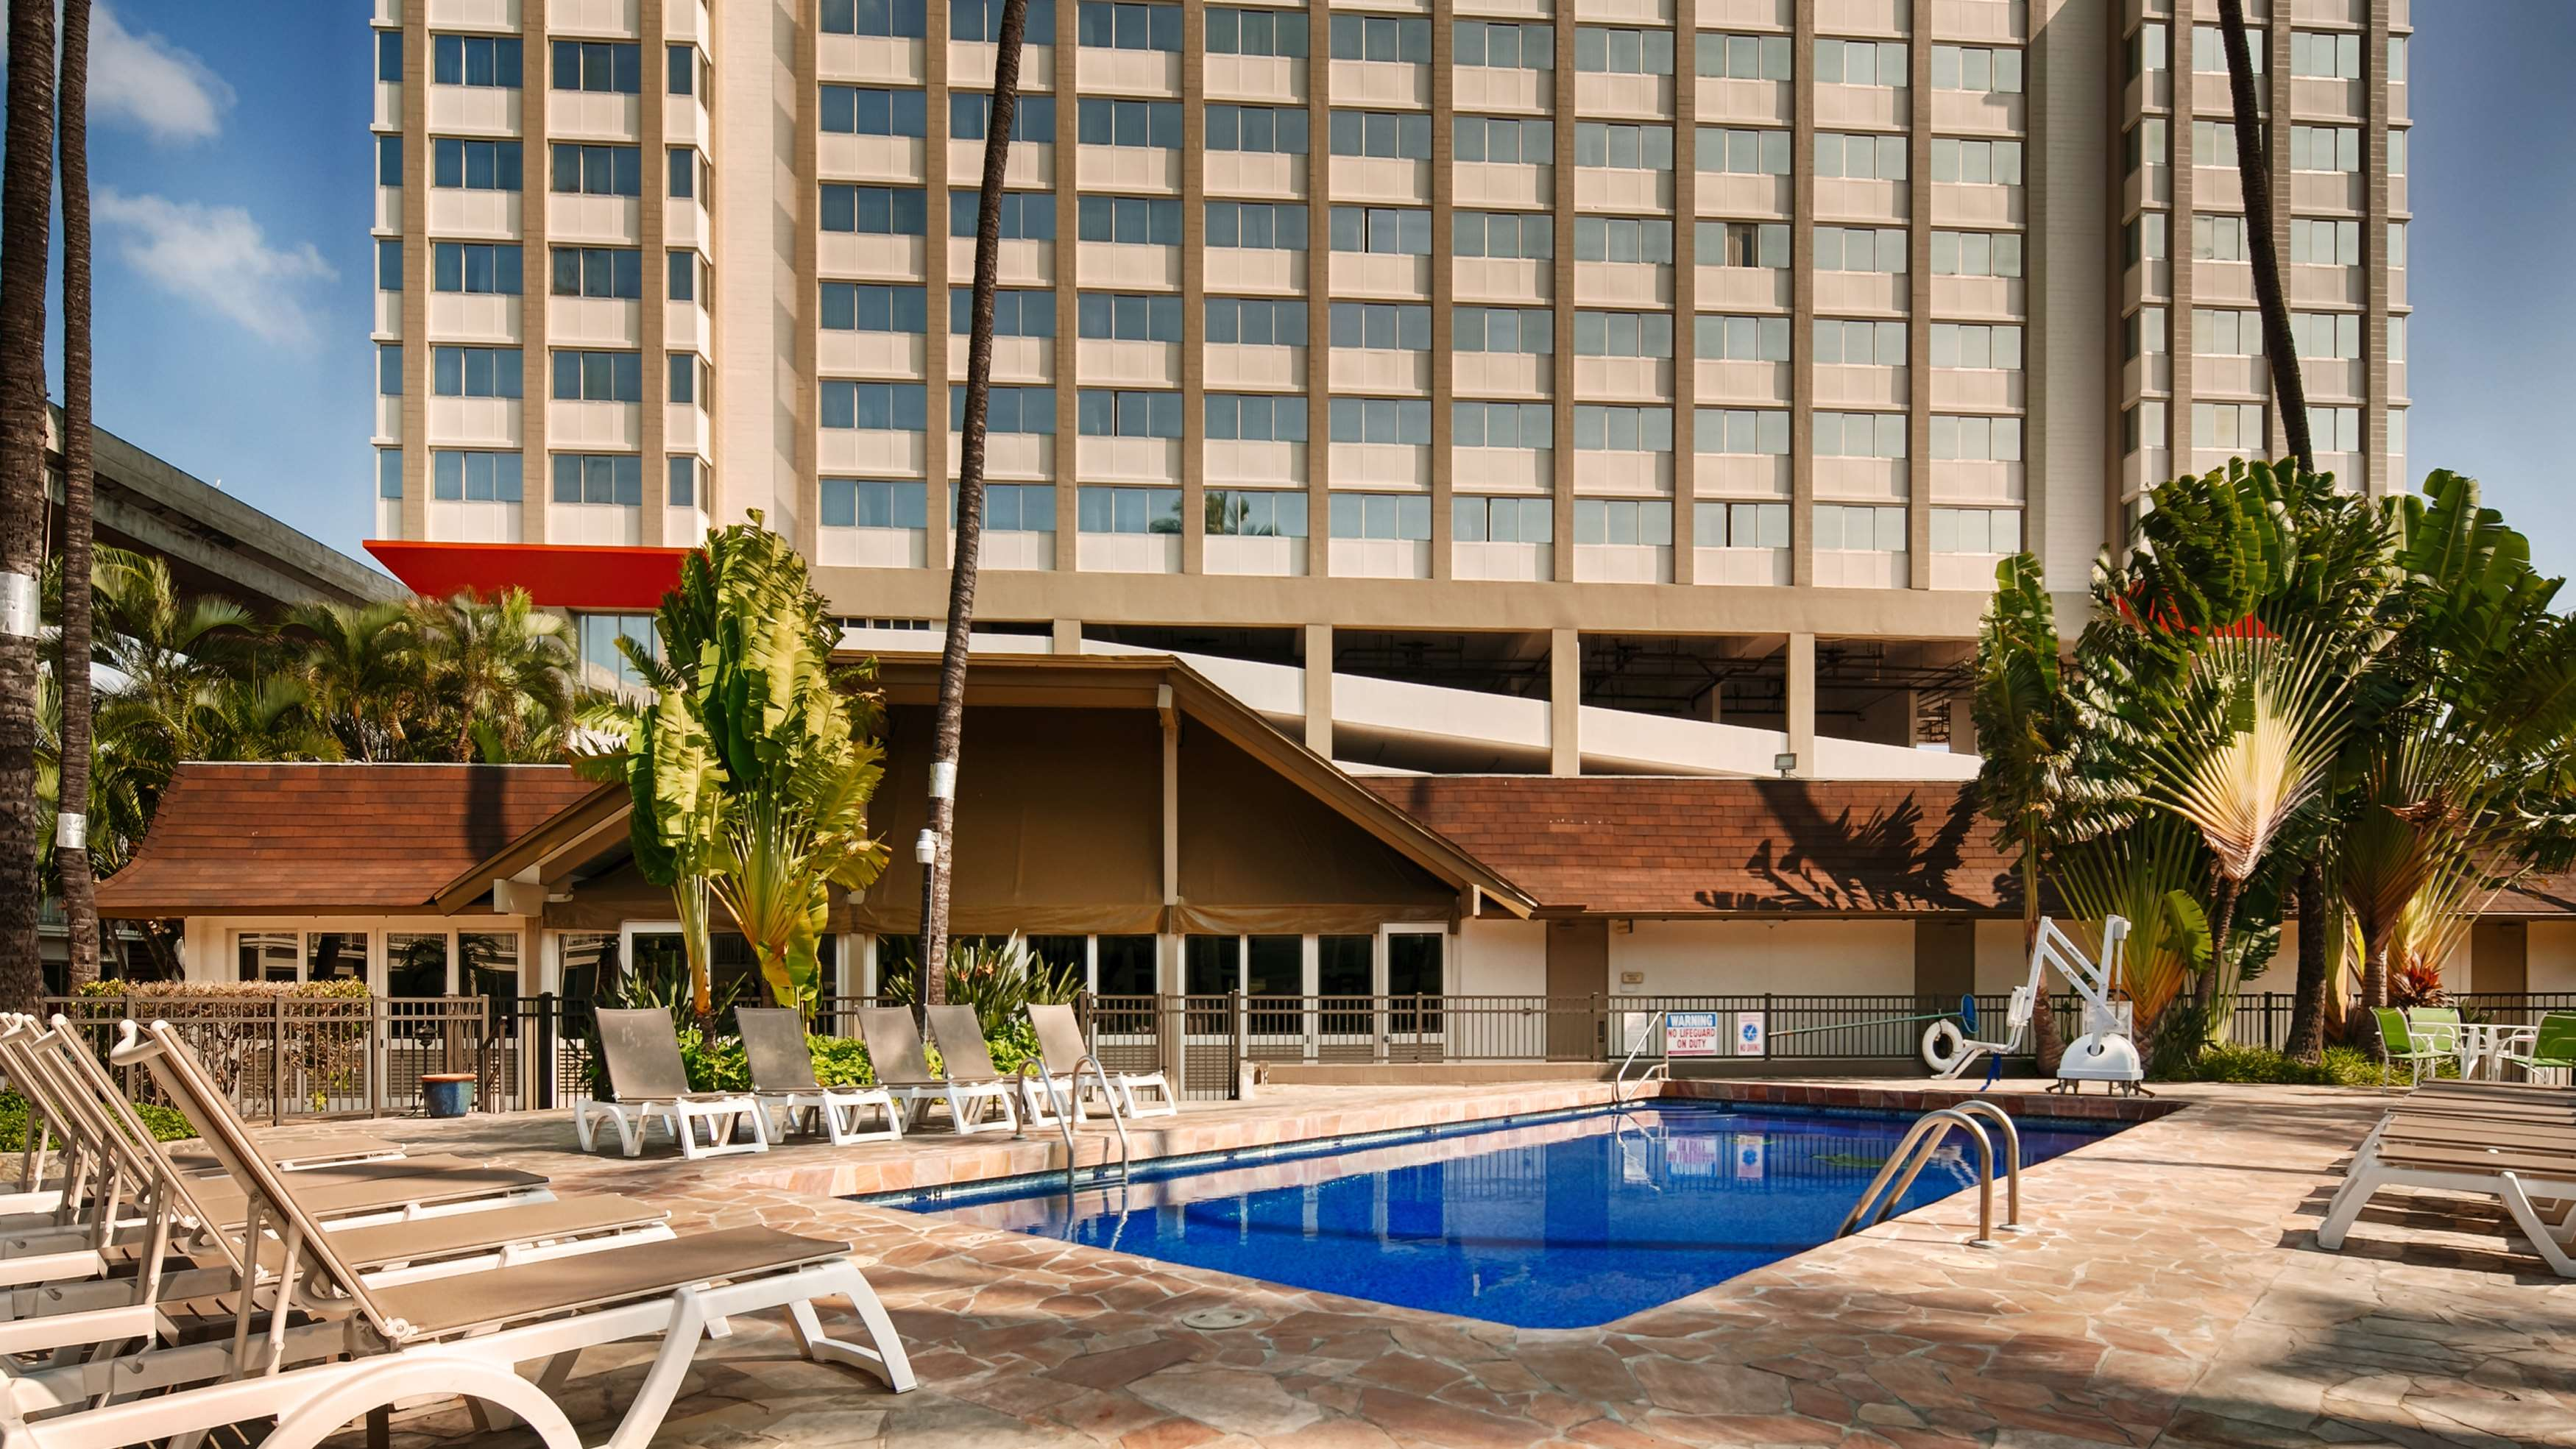 Best Western The Plaza Hotel image 15